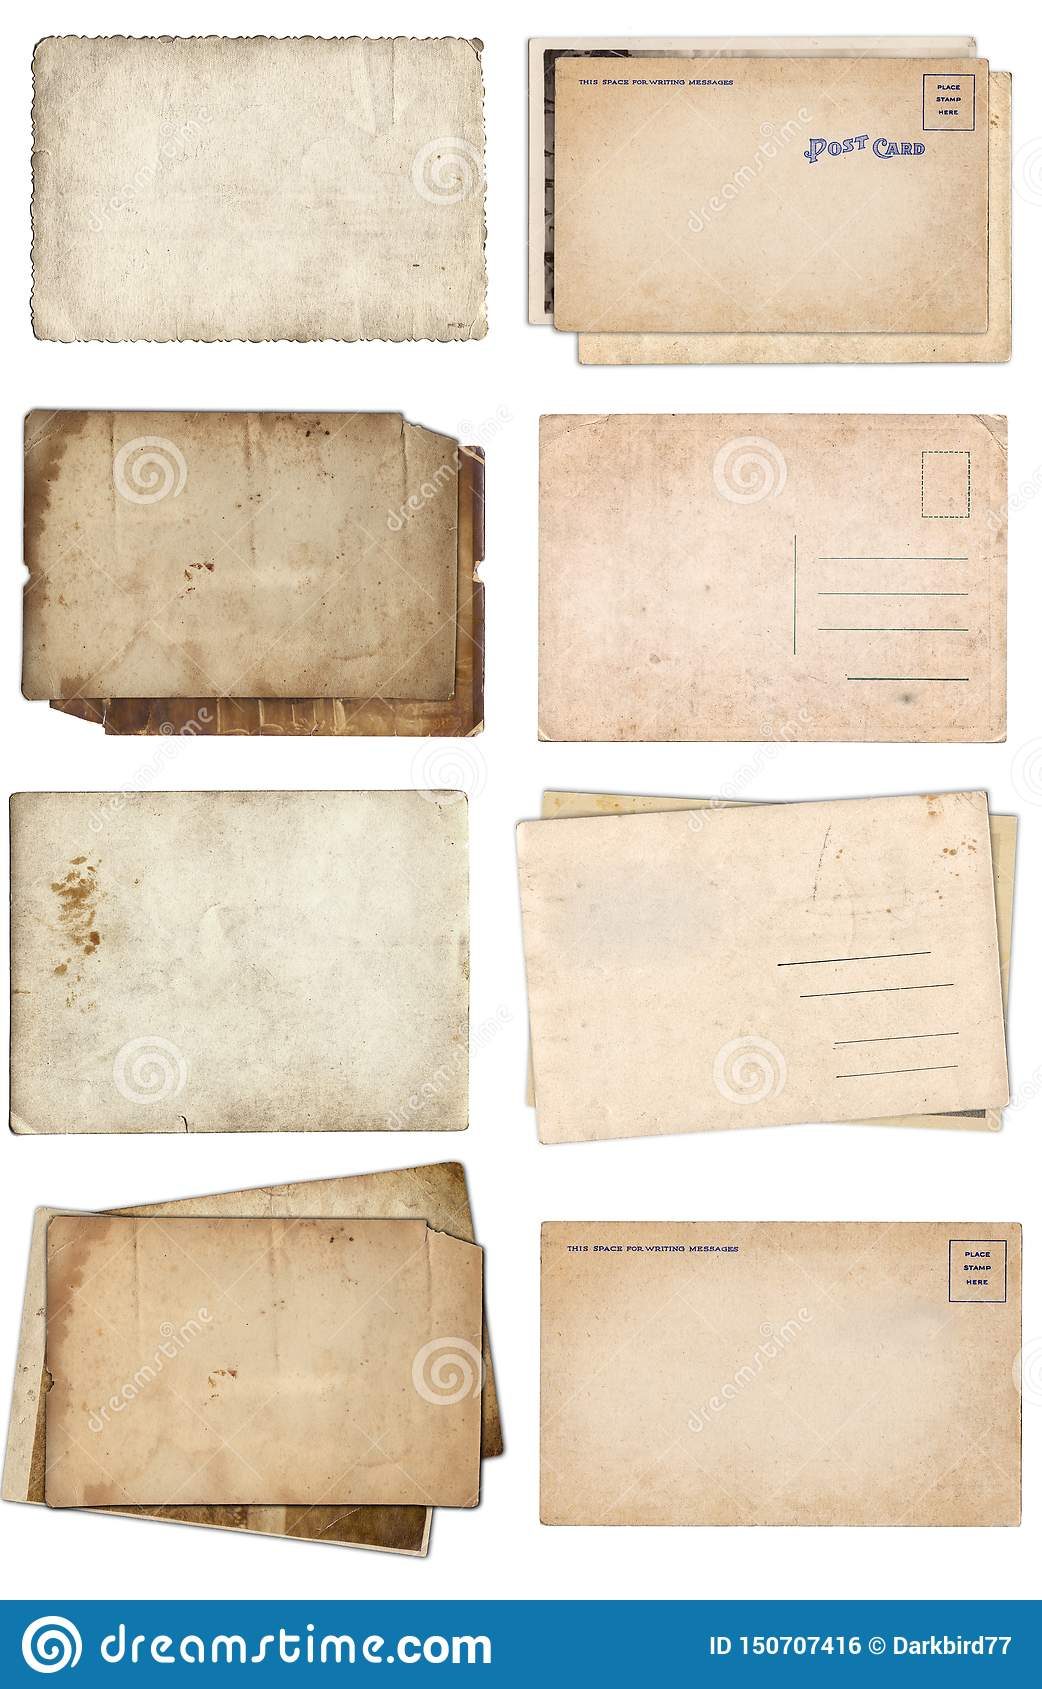 Set of various Old papers and postcards with scratches and stains texture isolated